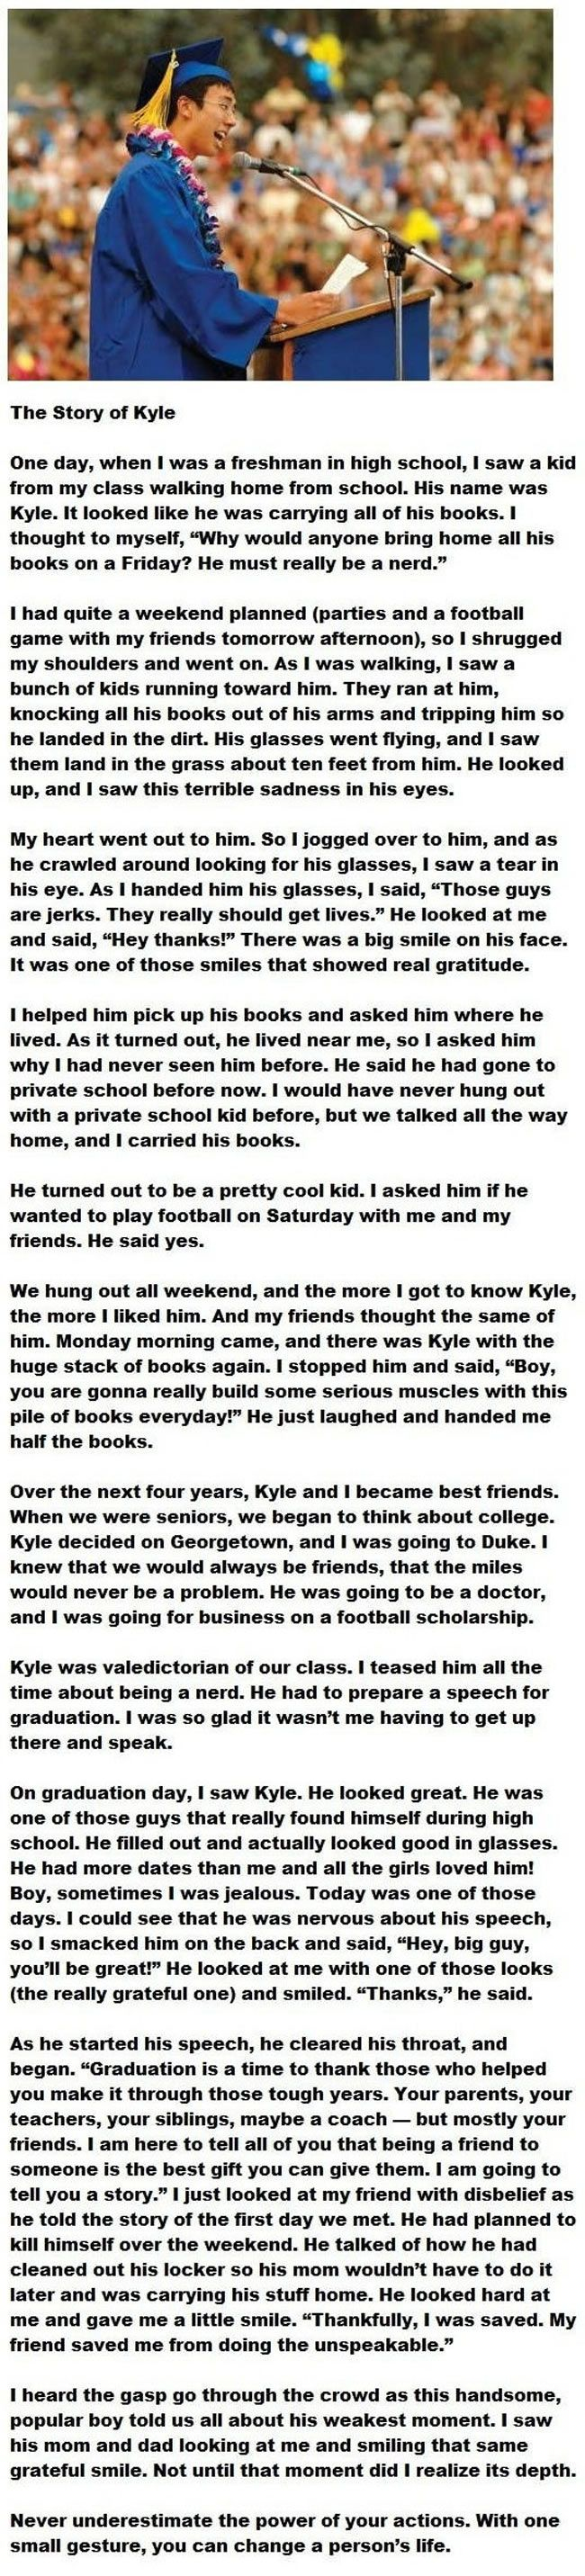 Such a sweet story about friendship...I don't know if this particular story is true but it's message is very important.